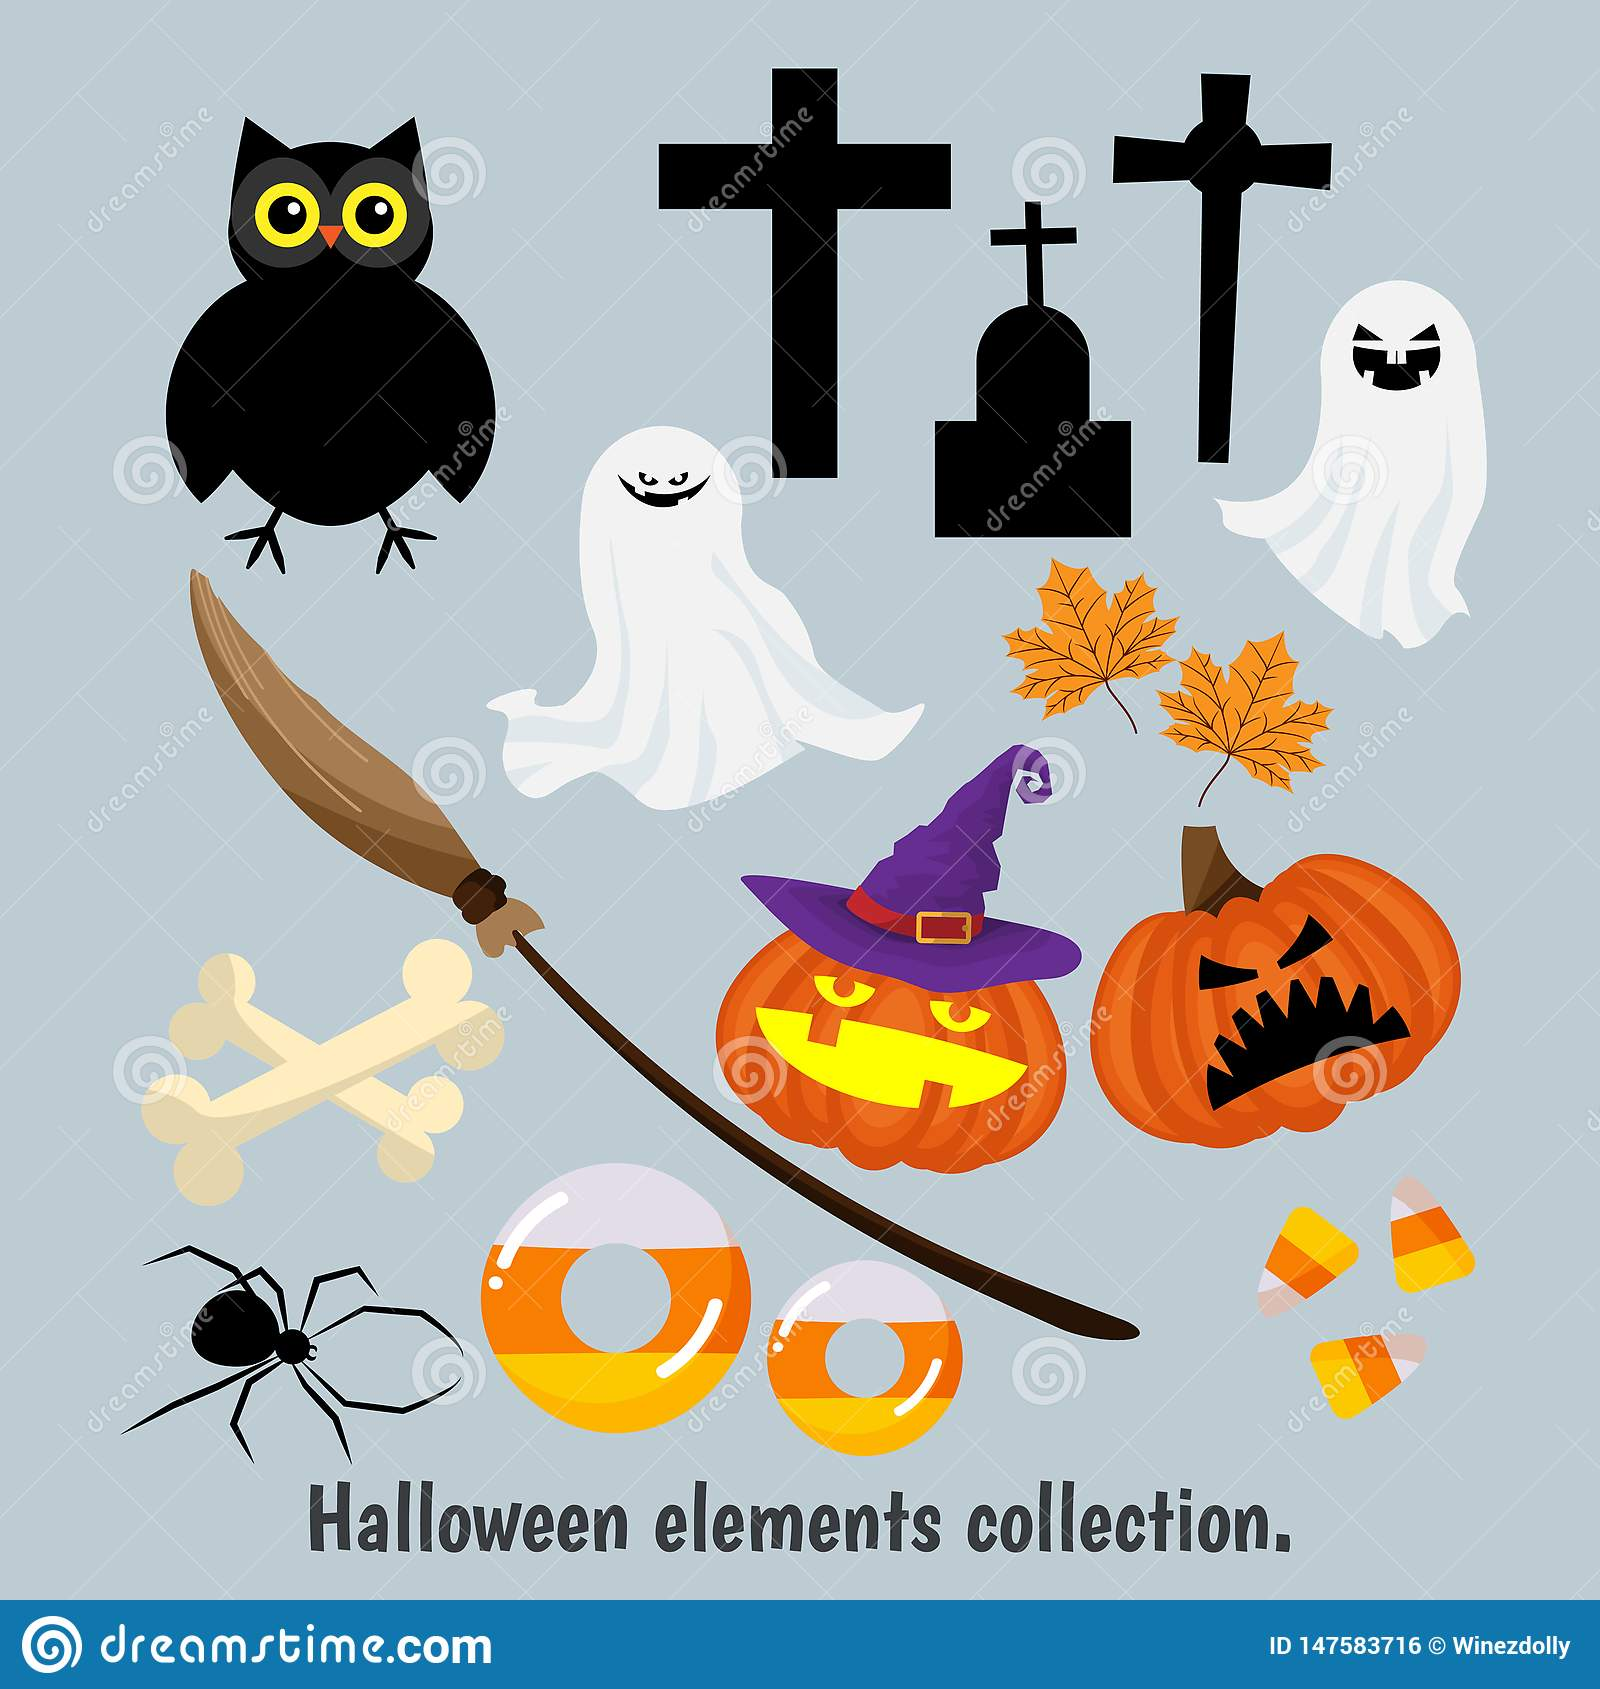 Halloween elements collection for design.